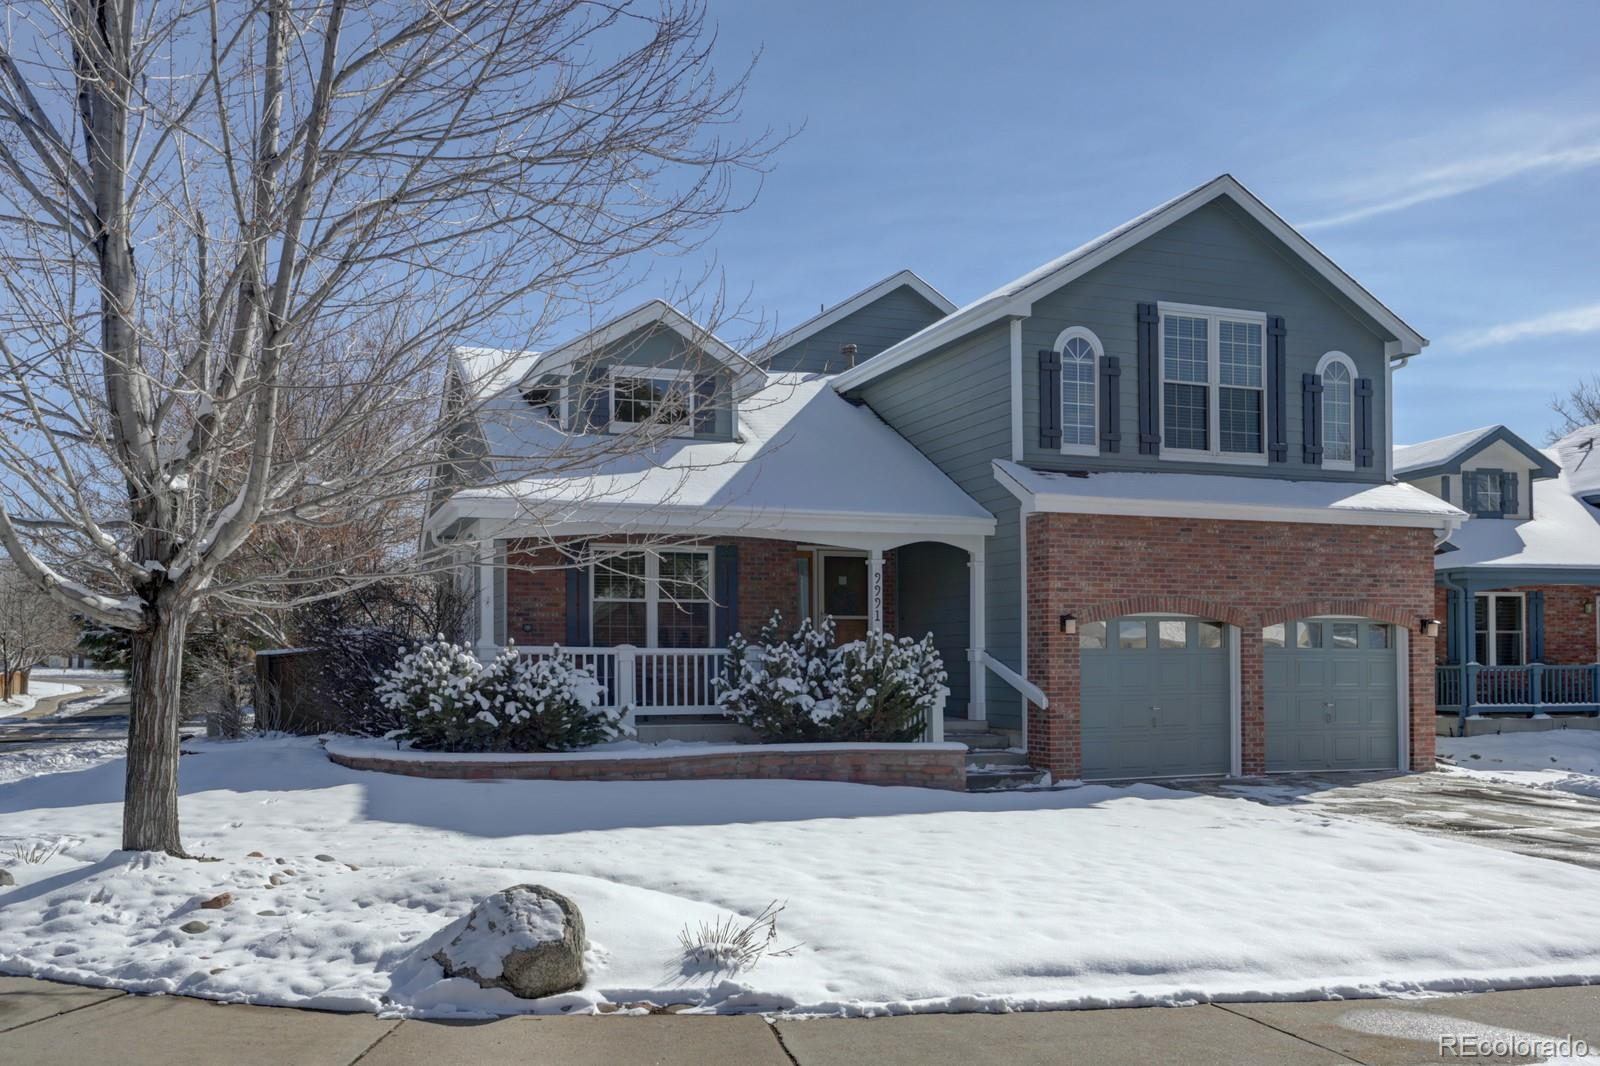 MLS# 5985159 - 1 - 9991 Spring Hill Place, Highlands Ranch, CO 80129